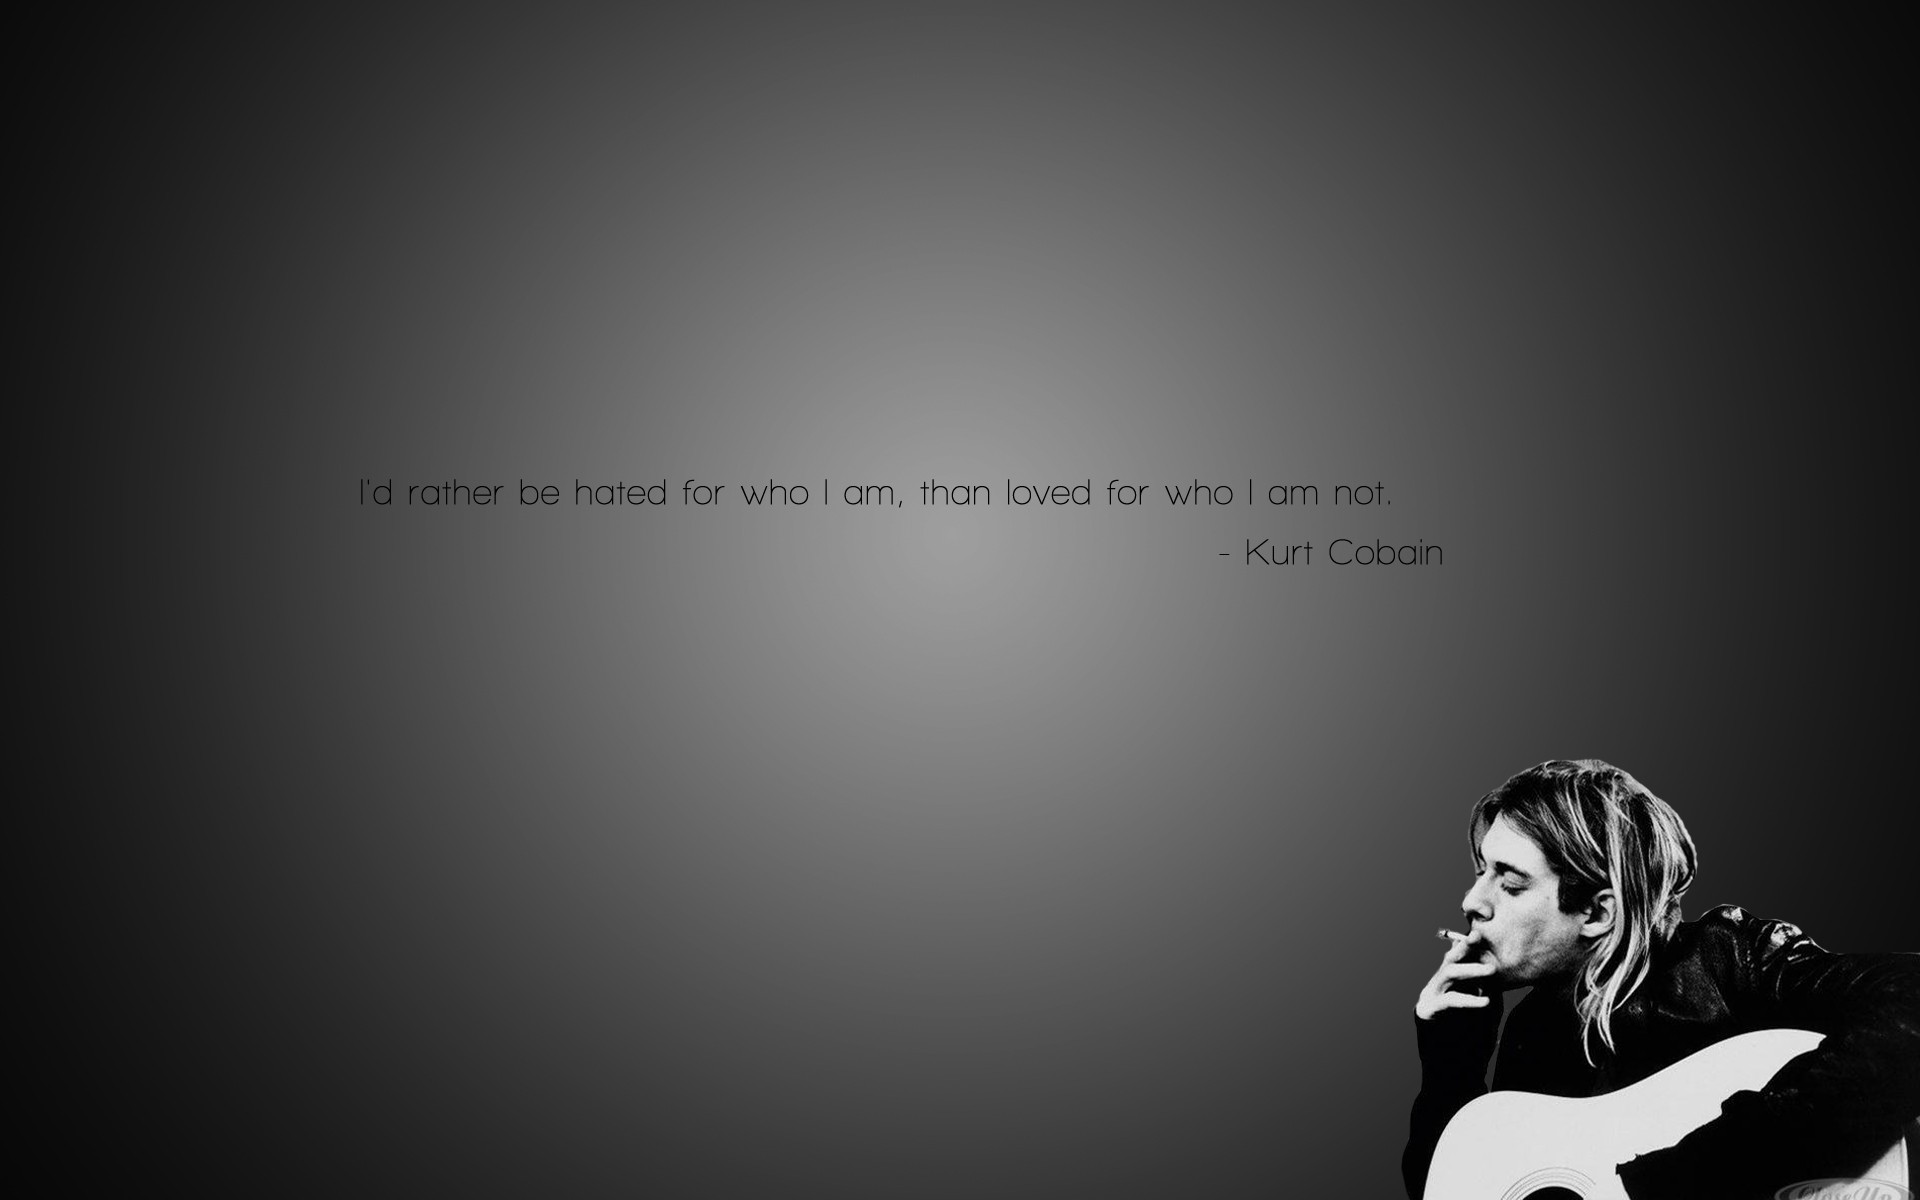 grunge quotes nirvana kurt cobain cigarettes wallpaper background 1920x1200